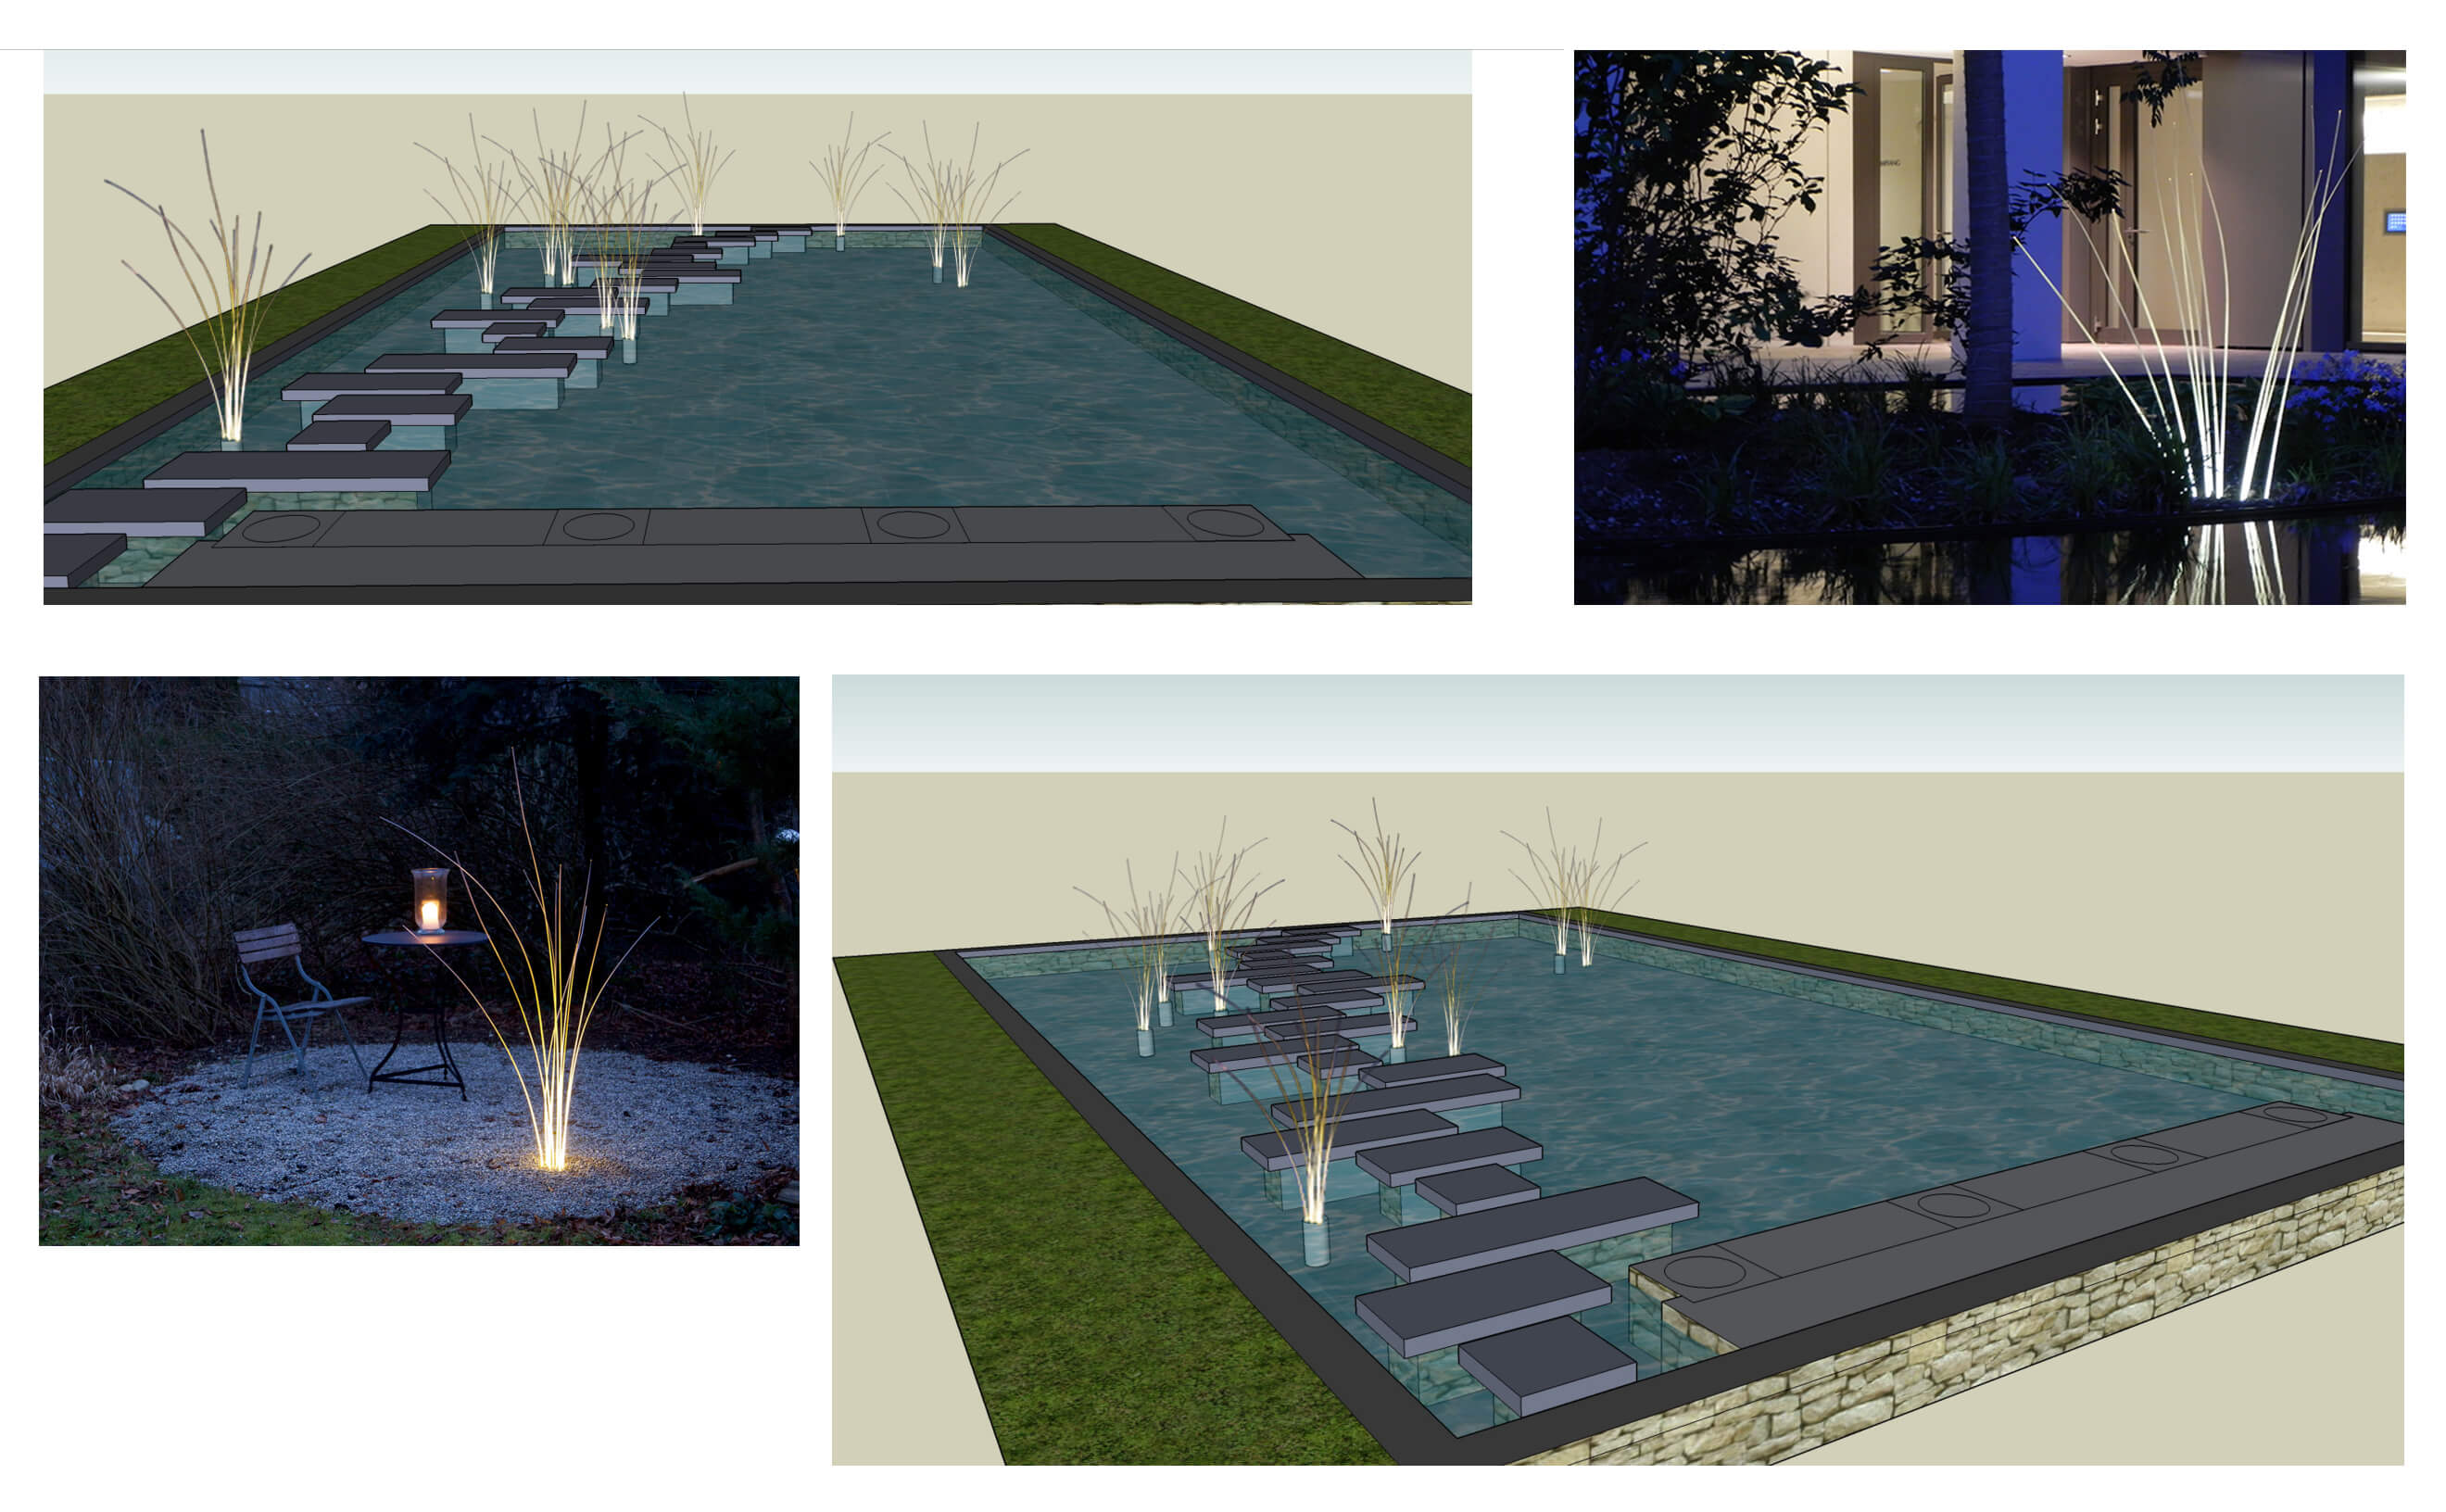 Concept board for pond lighting